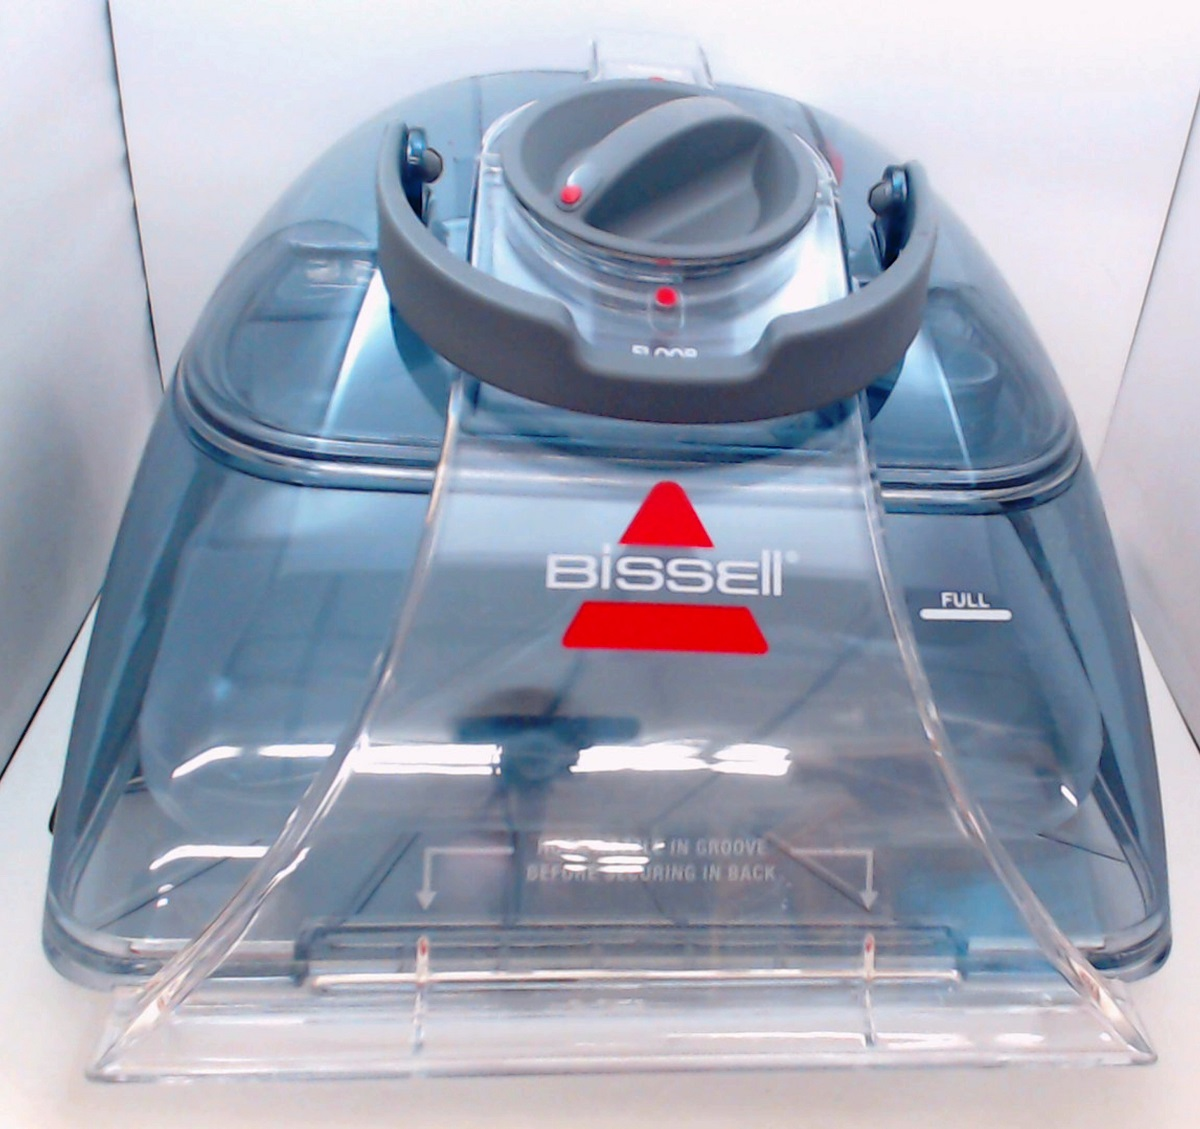 bissell proheat 2x carpet cleaner tank assembly